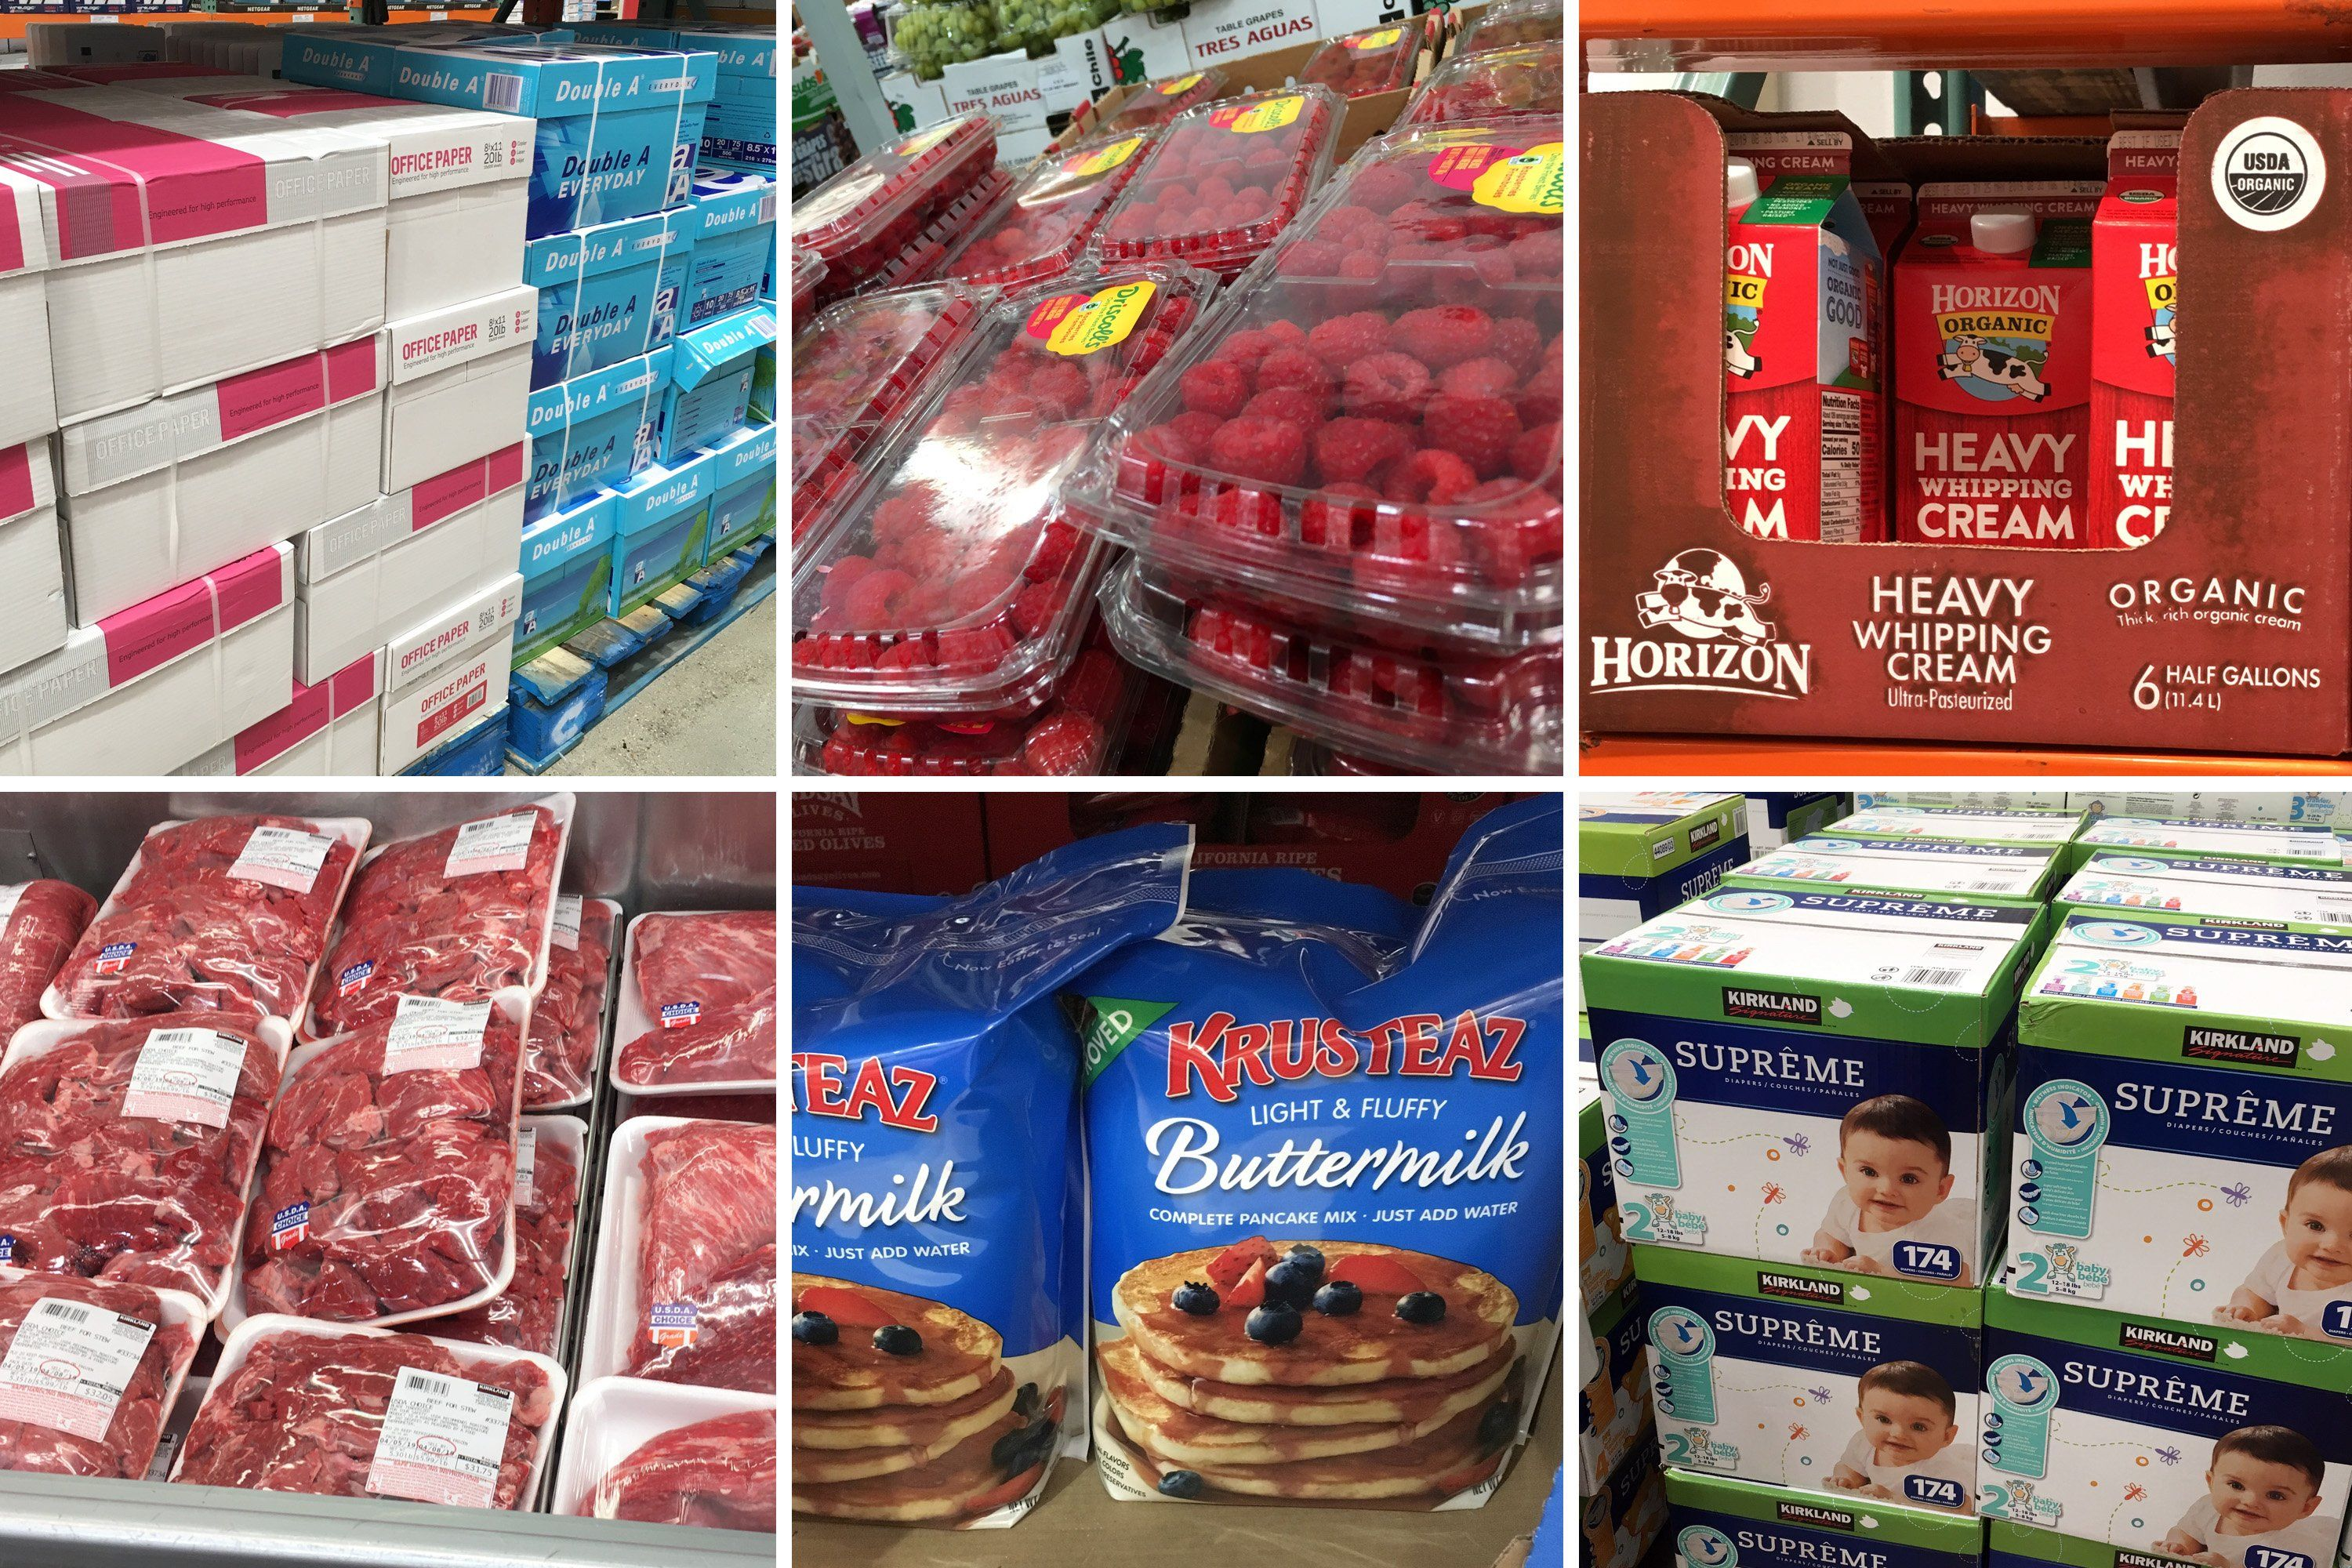 7 Things You Should Never Buy At Costco According To A Shopping